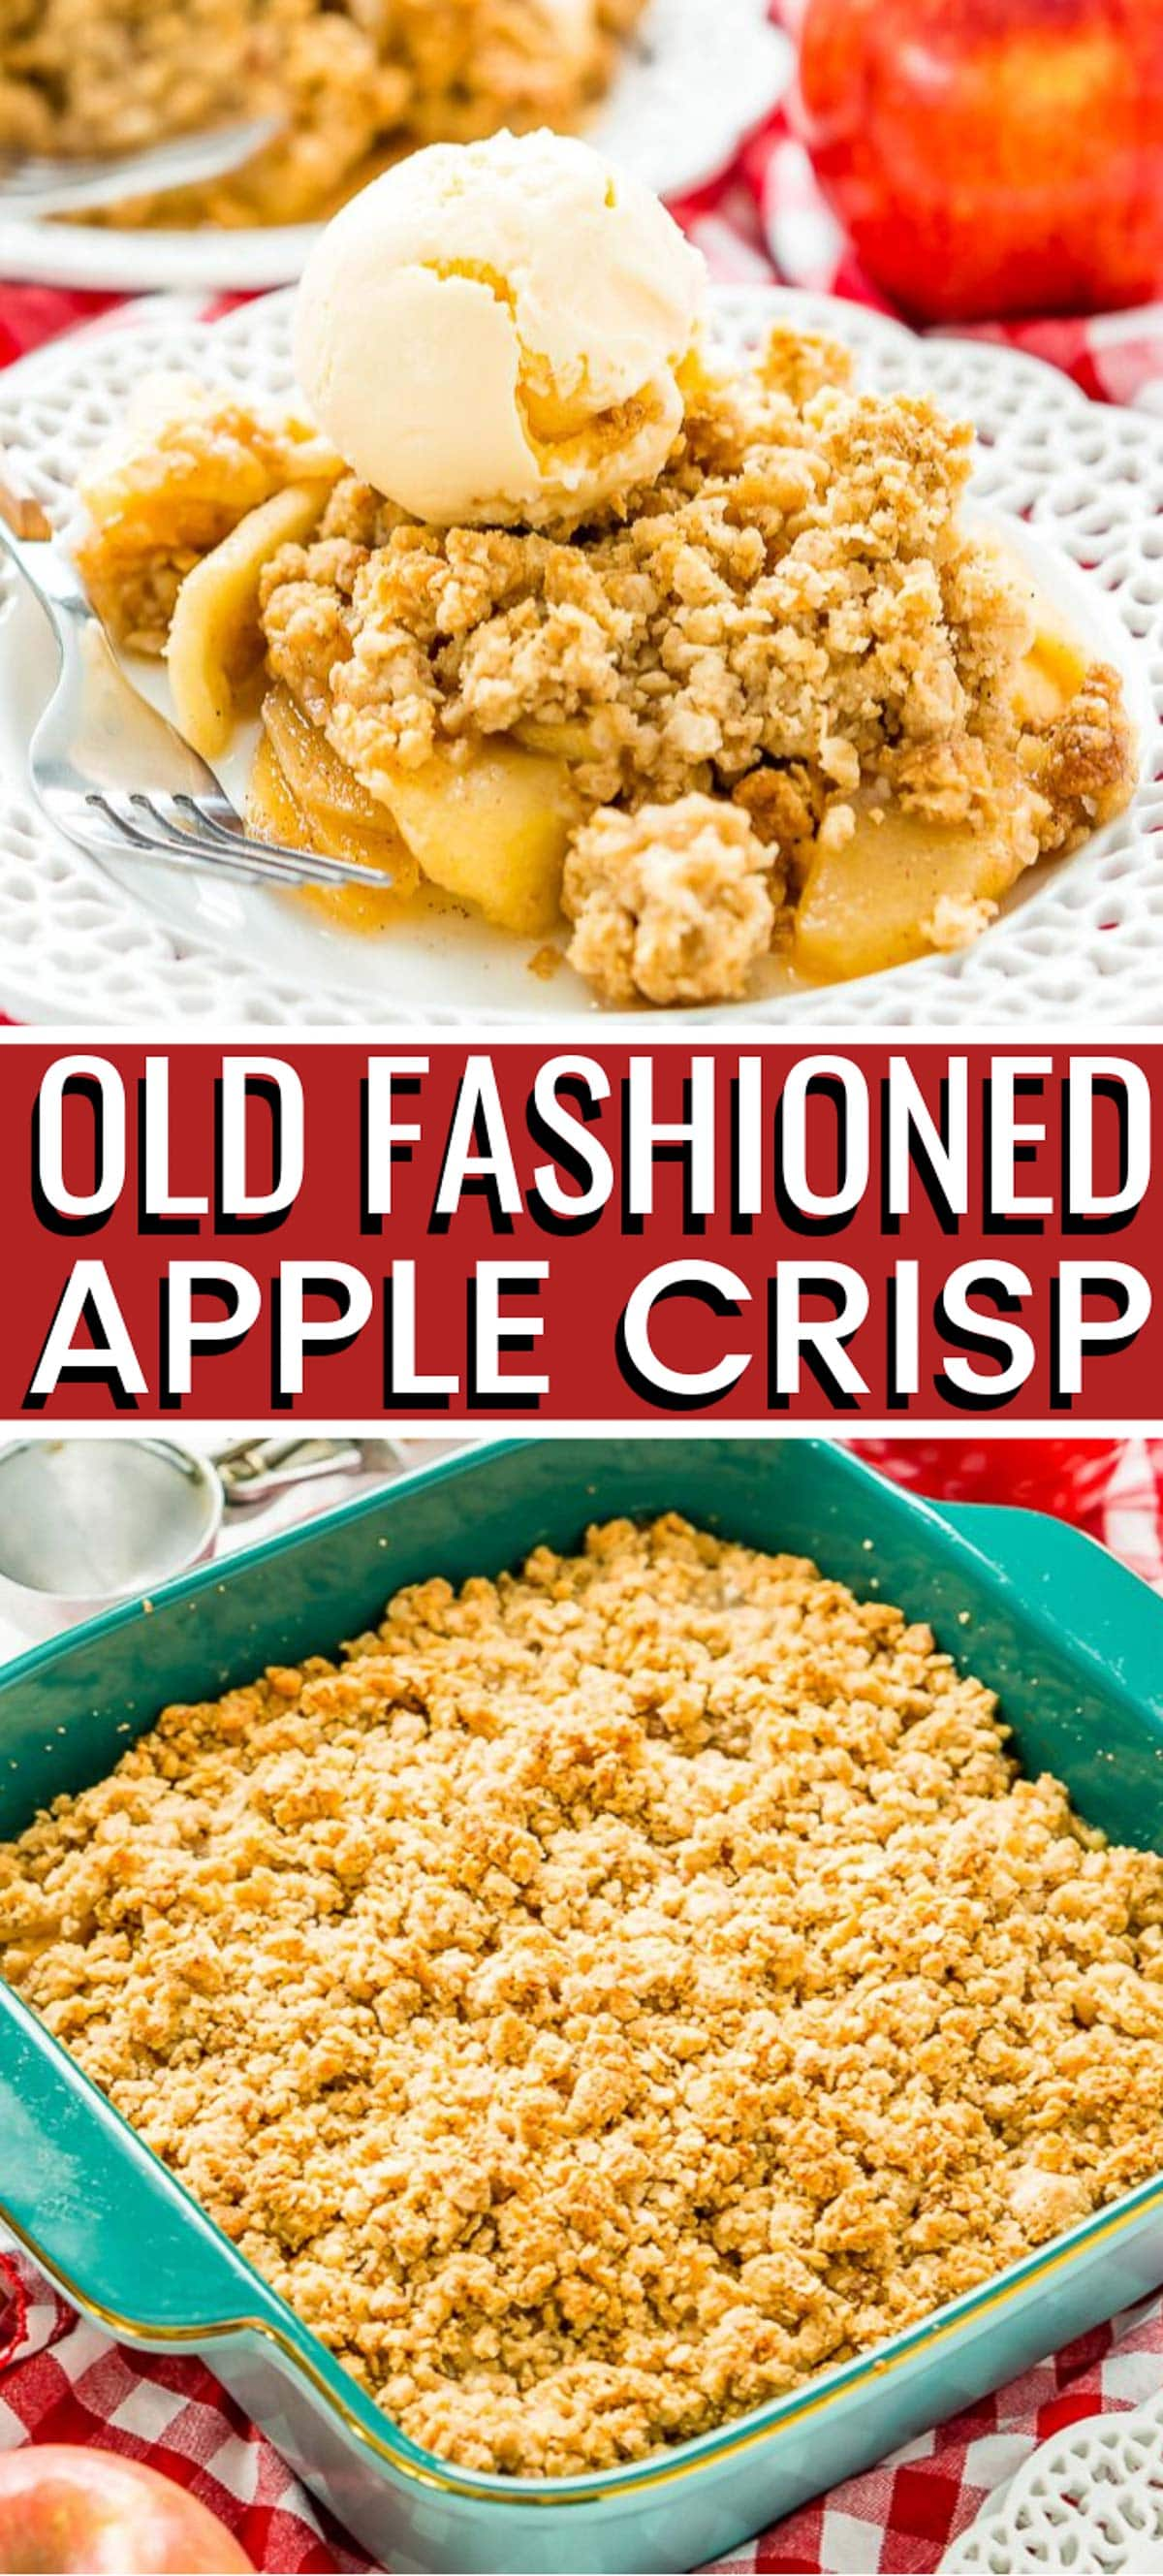 Apple Crisp is a classic dessert recipe that's perfect for summer and fall. Tender and spicy apples are topped with a sweet and hearty oat topping. via @sugarandsoulco